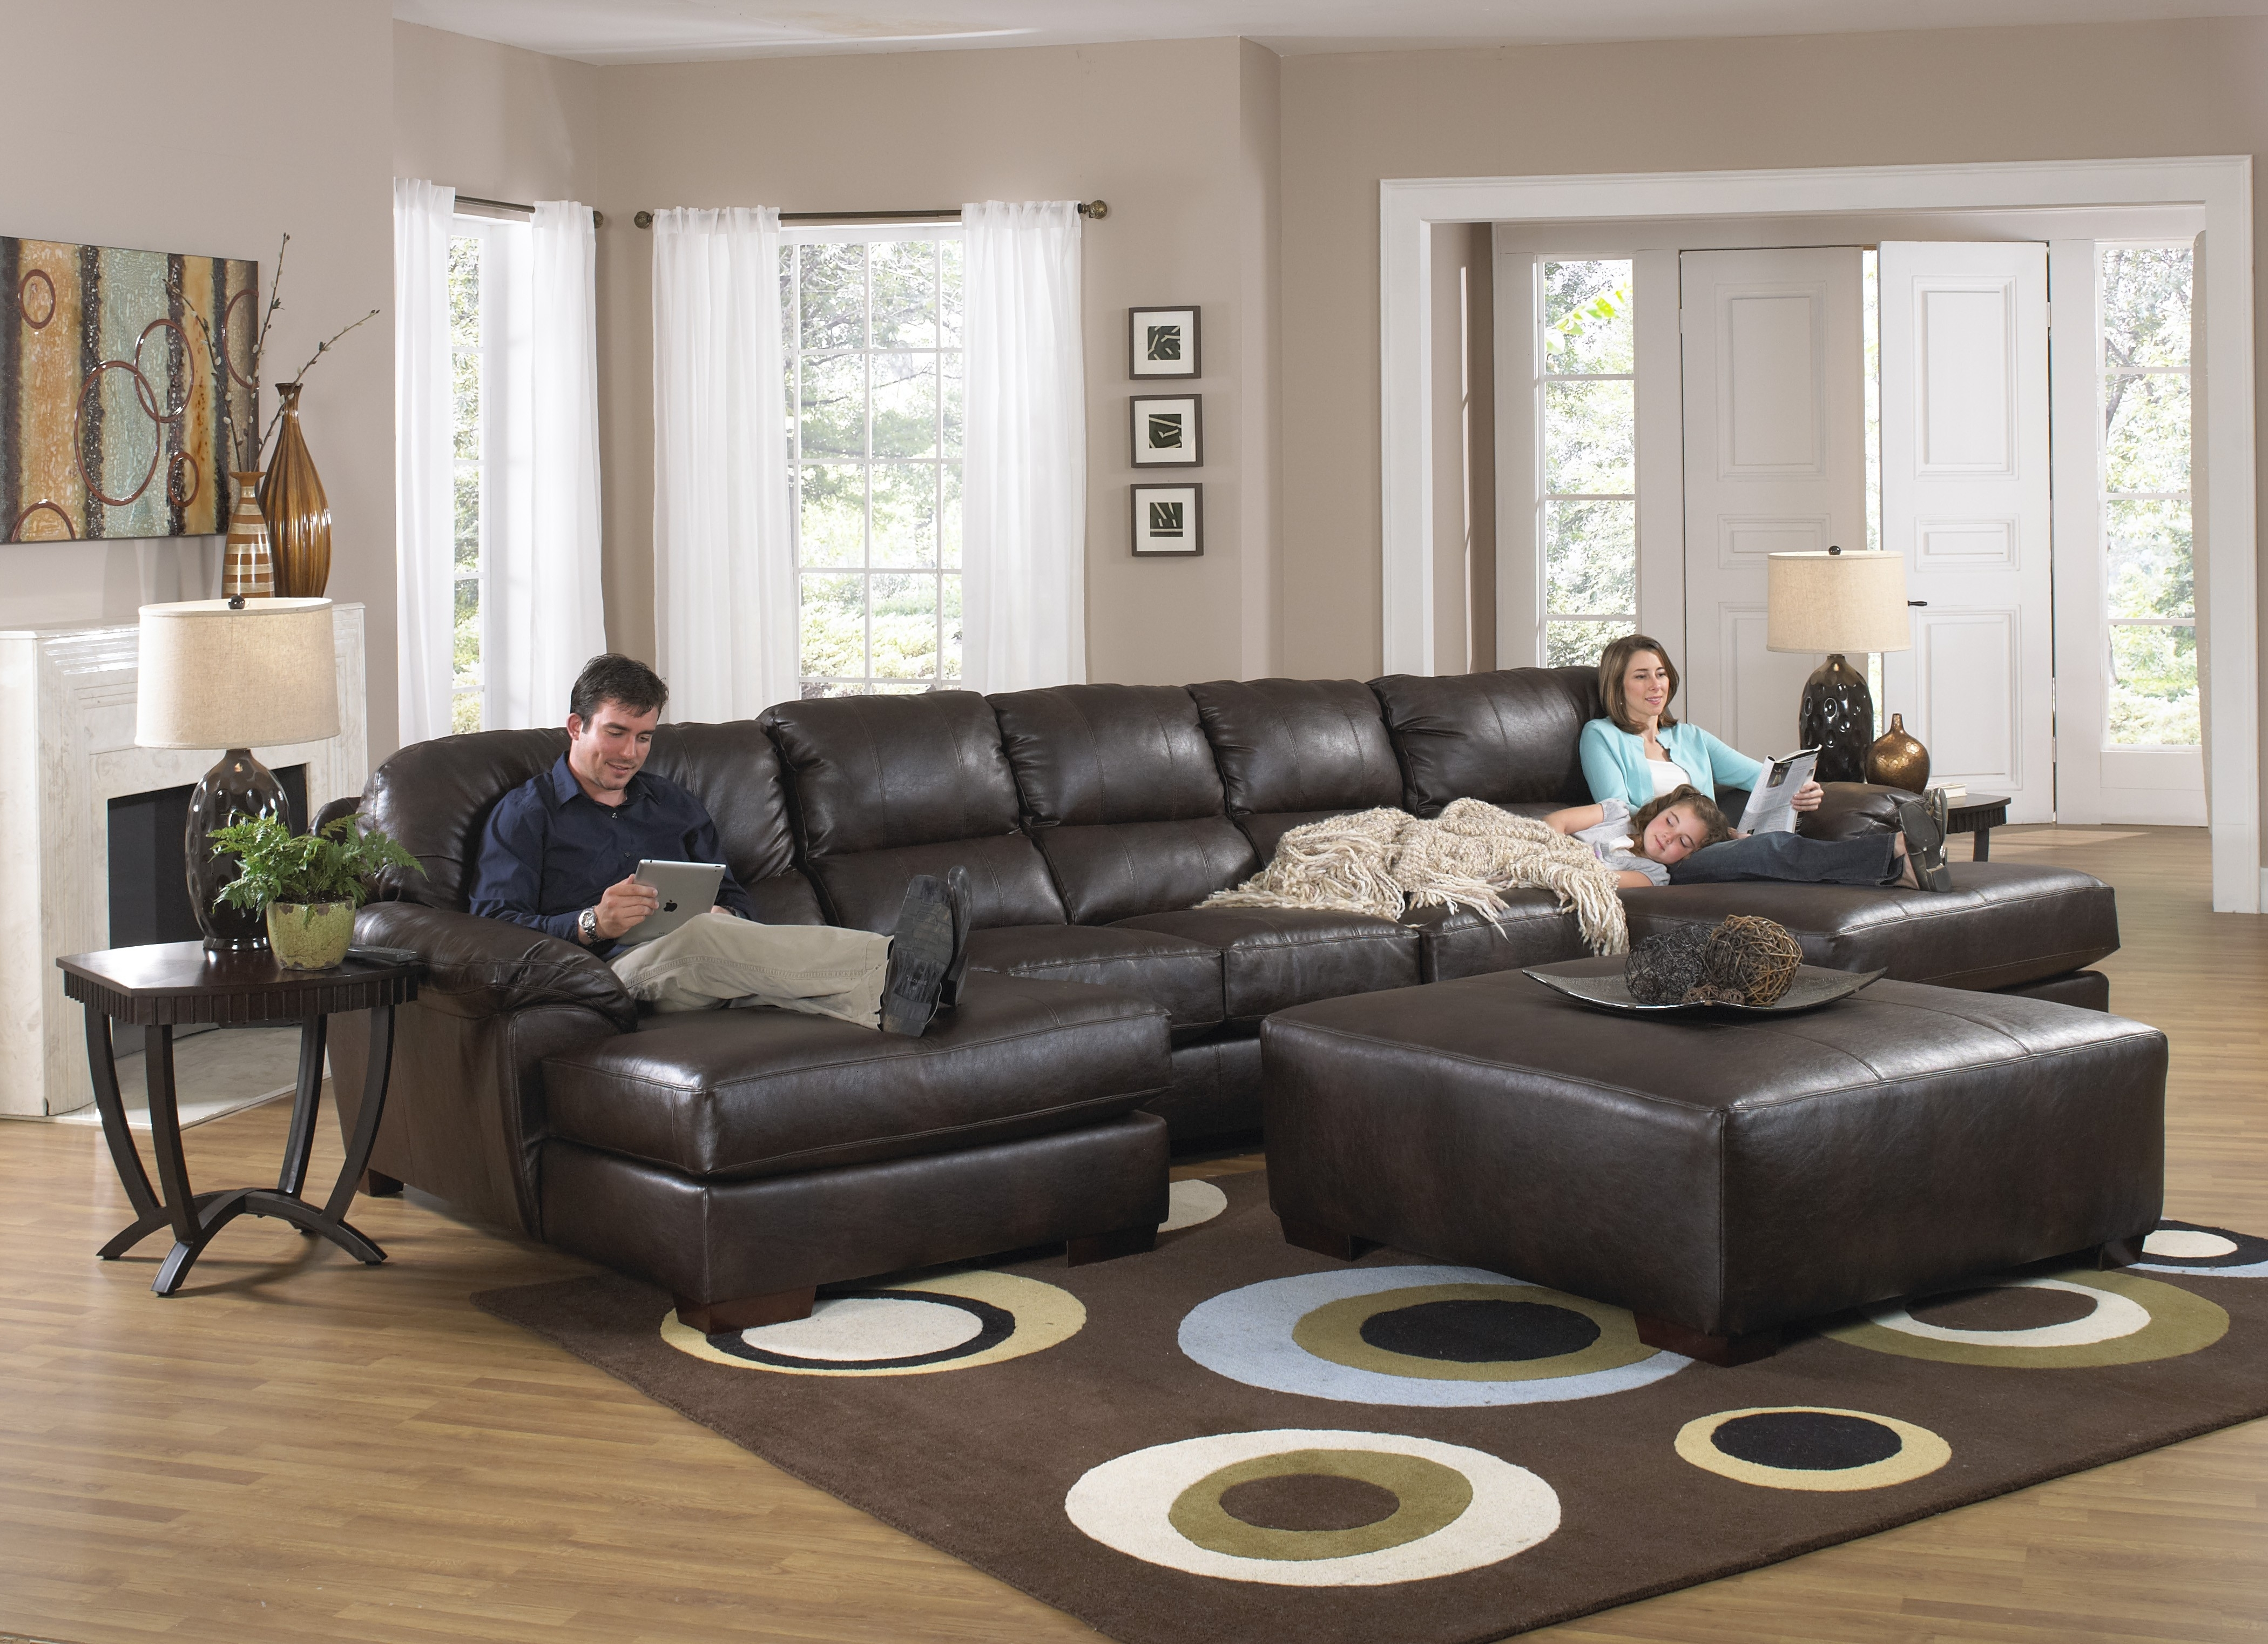 Chaise Recliners With Regard To Trendy Appealing Leather Sectional Sofas With Recliners And Chaise 83 For (View 5 of 15)